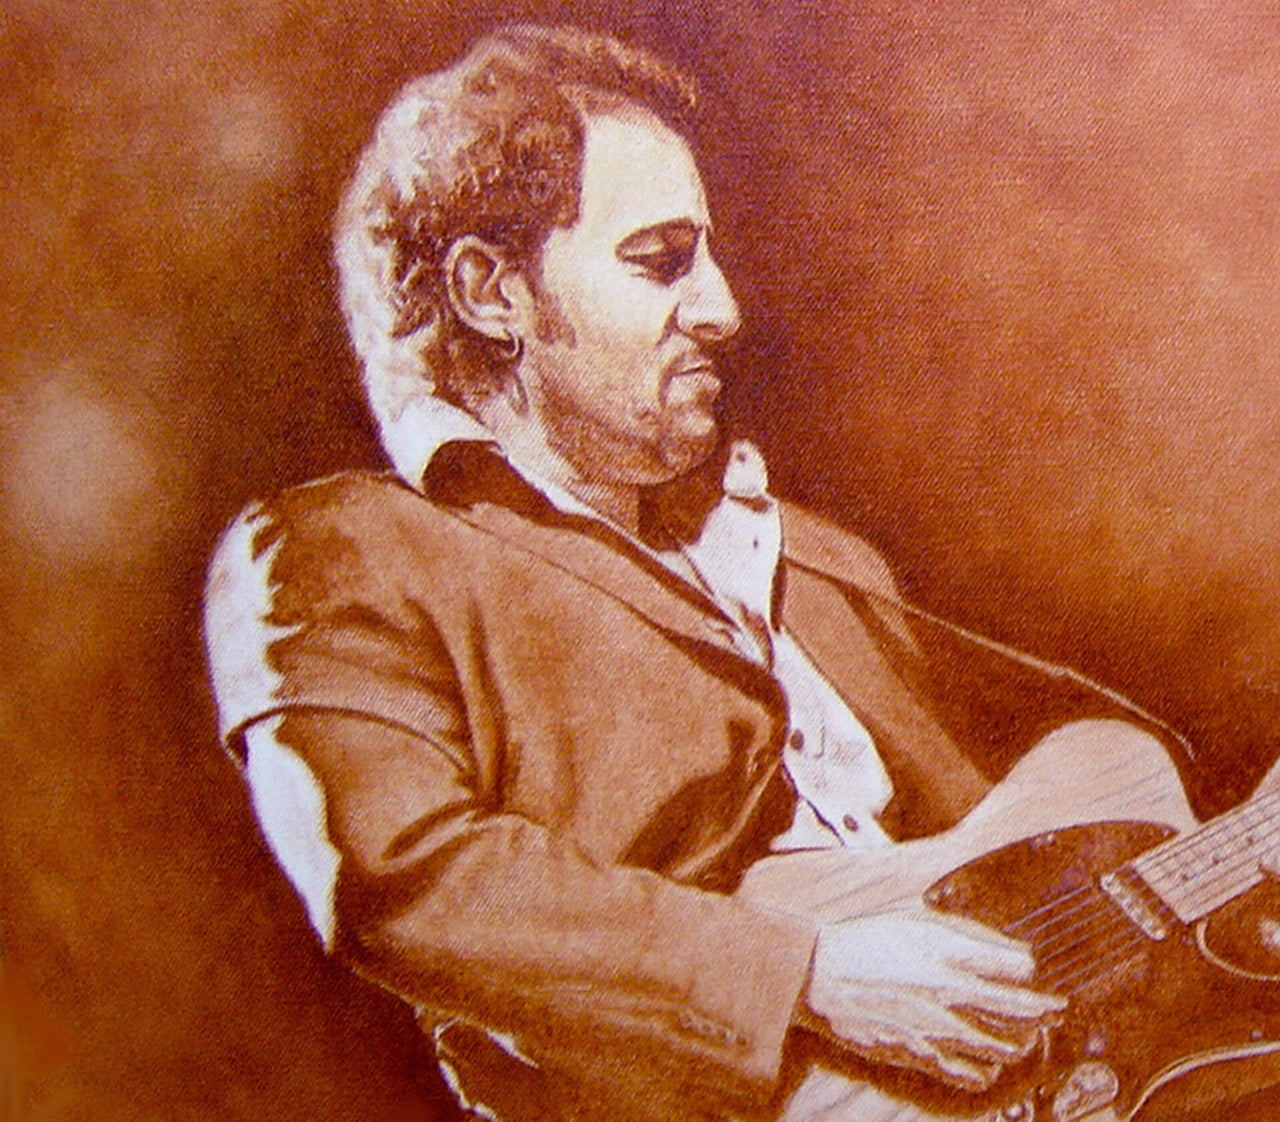 Bruce Springsteen - Oil on Canvas 12x24